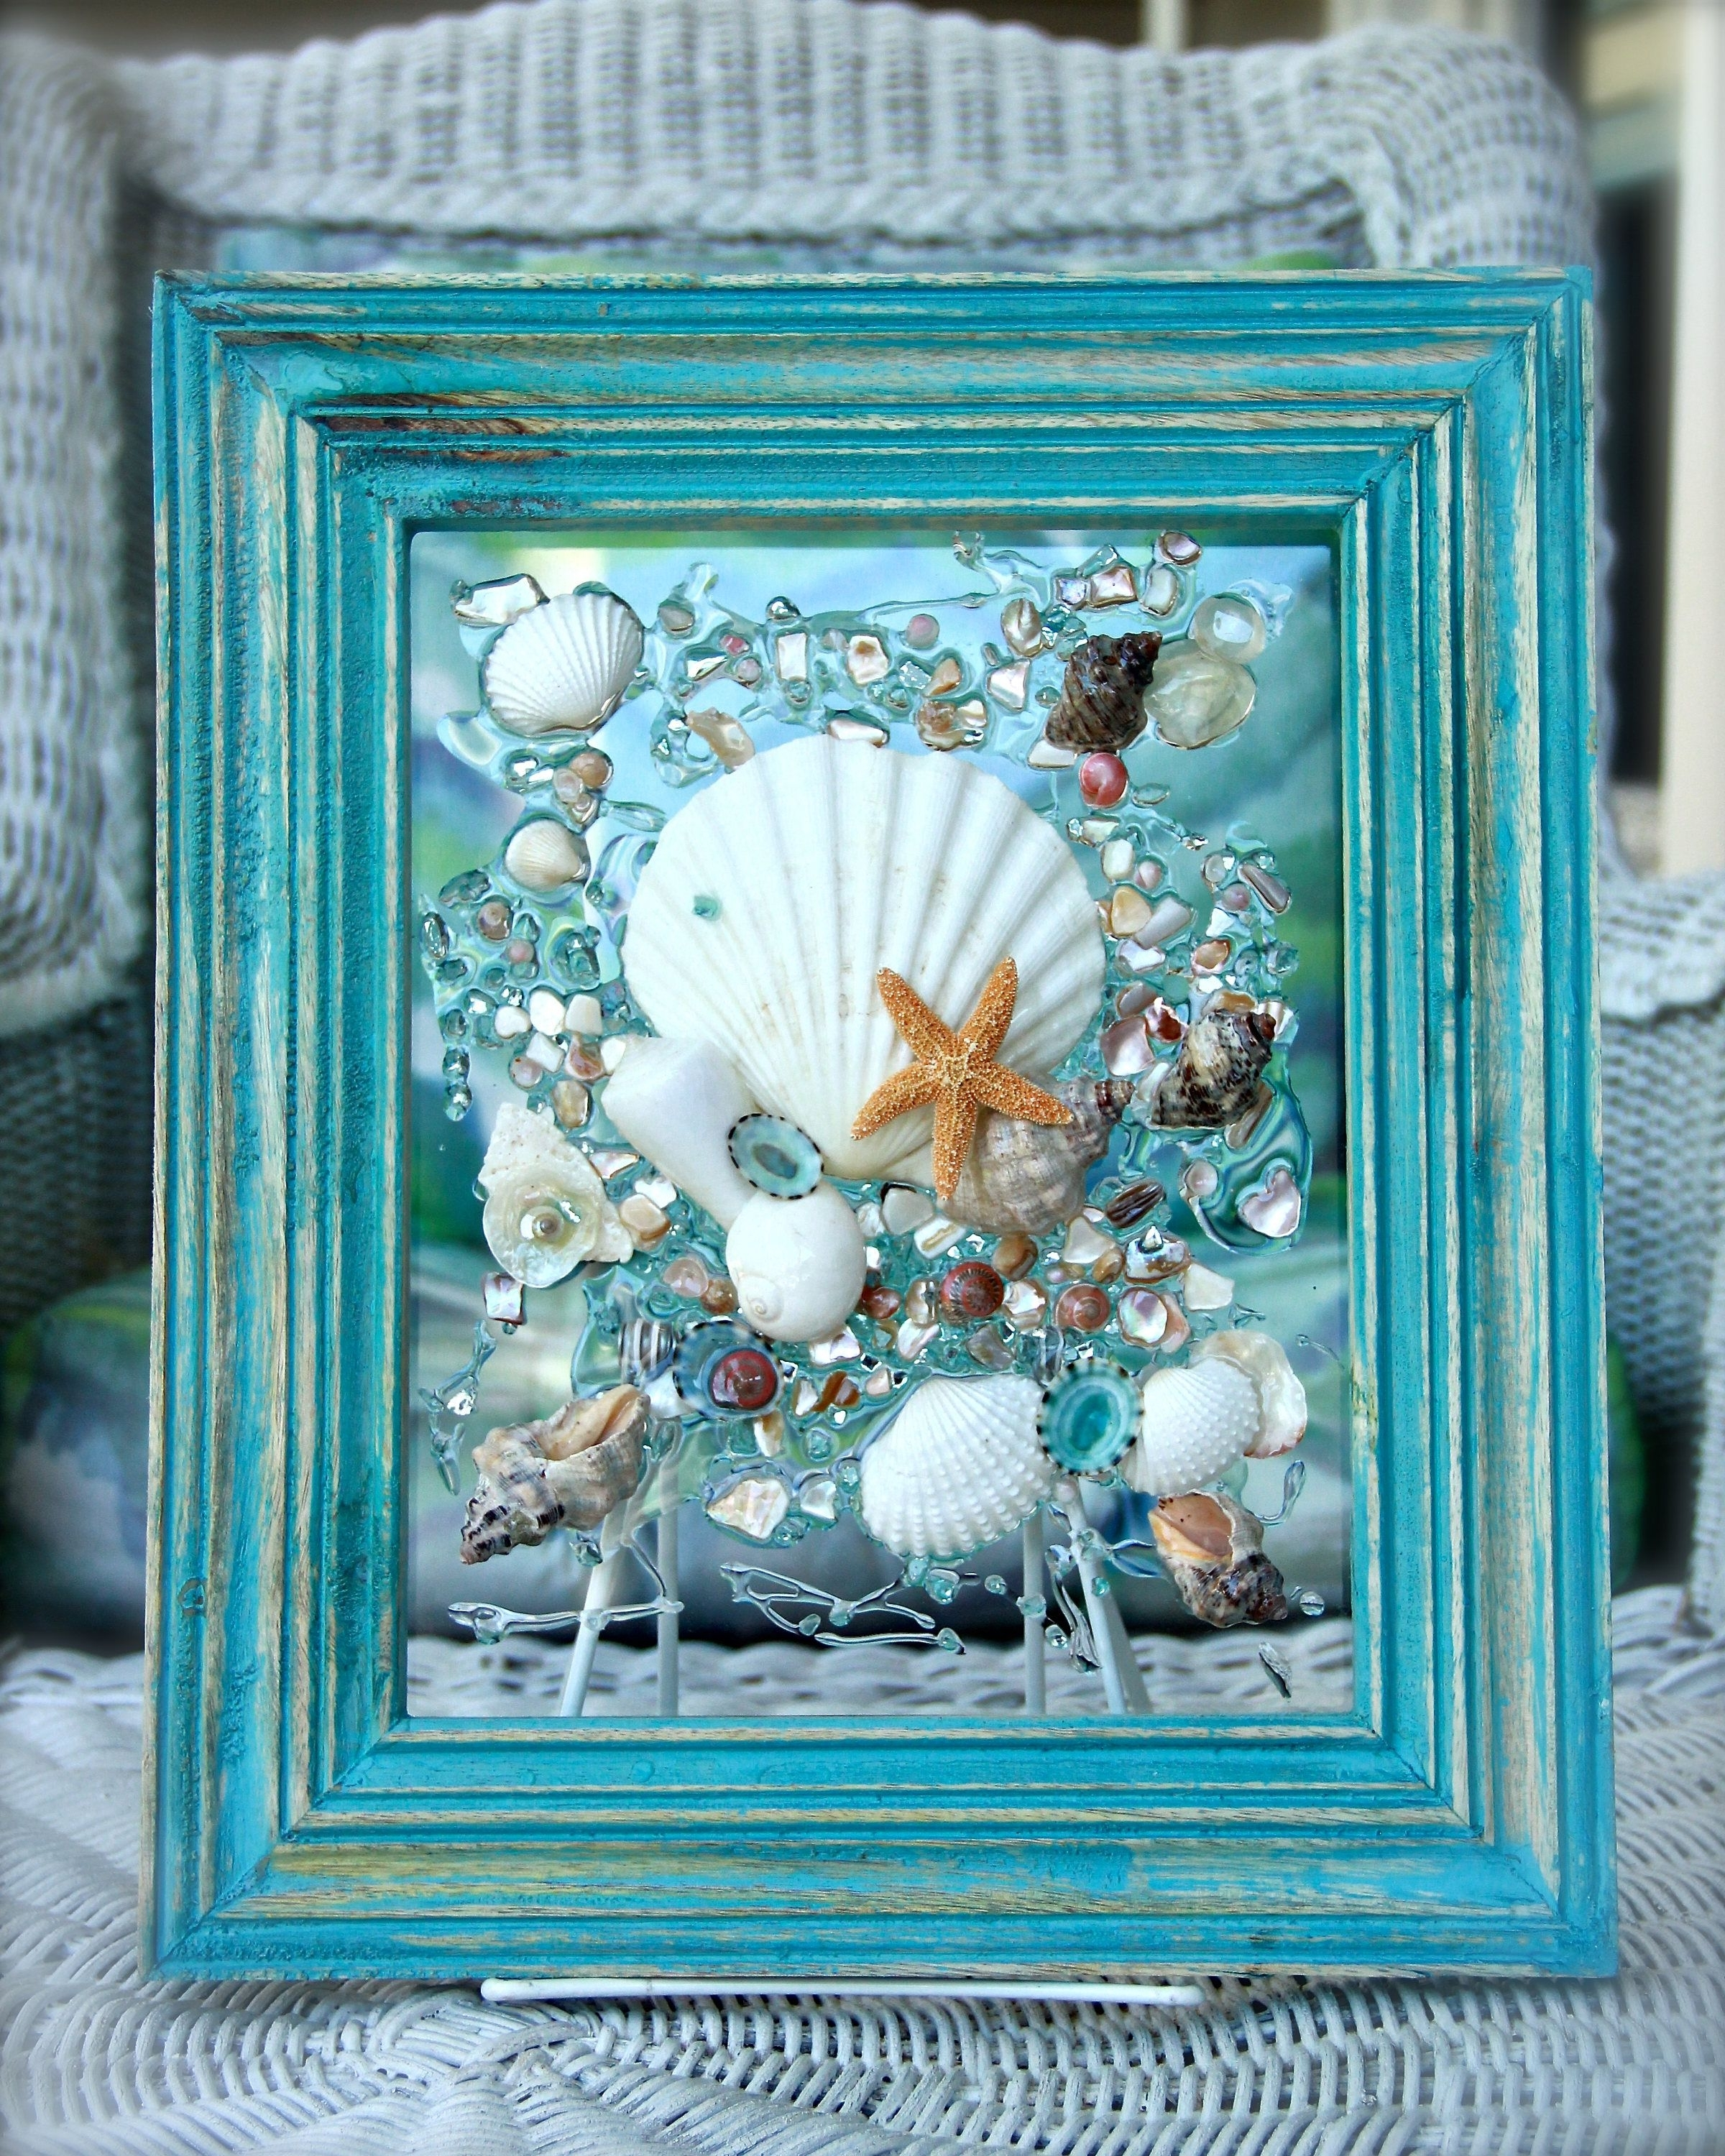 Wall Art With Seashells Pertaining To Most Recently Released Beach Decor Of Seashell Art, Beach Bathroom Decor Wall Hanging (View 2 of 15)